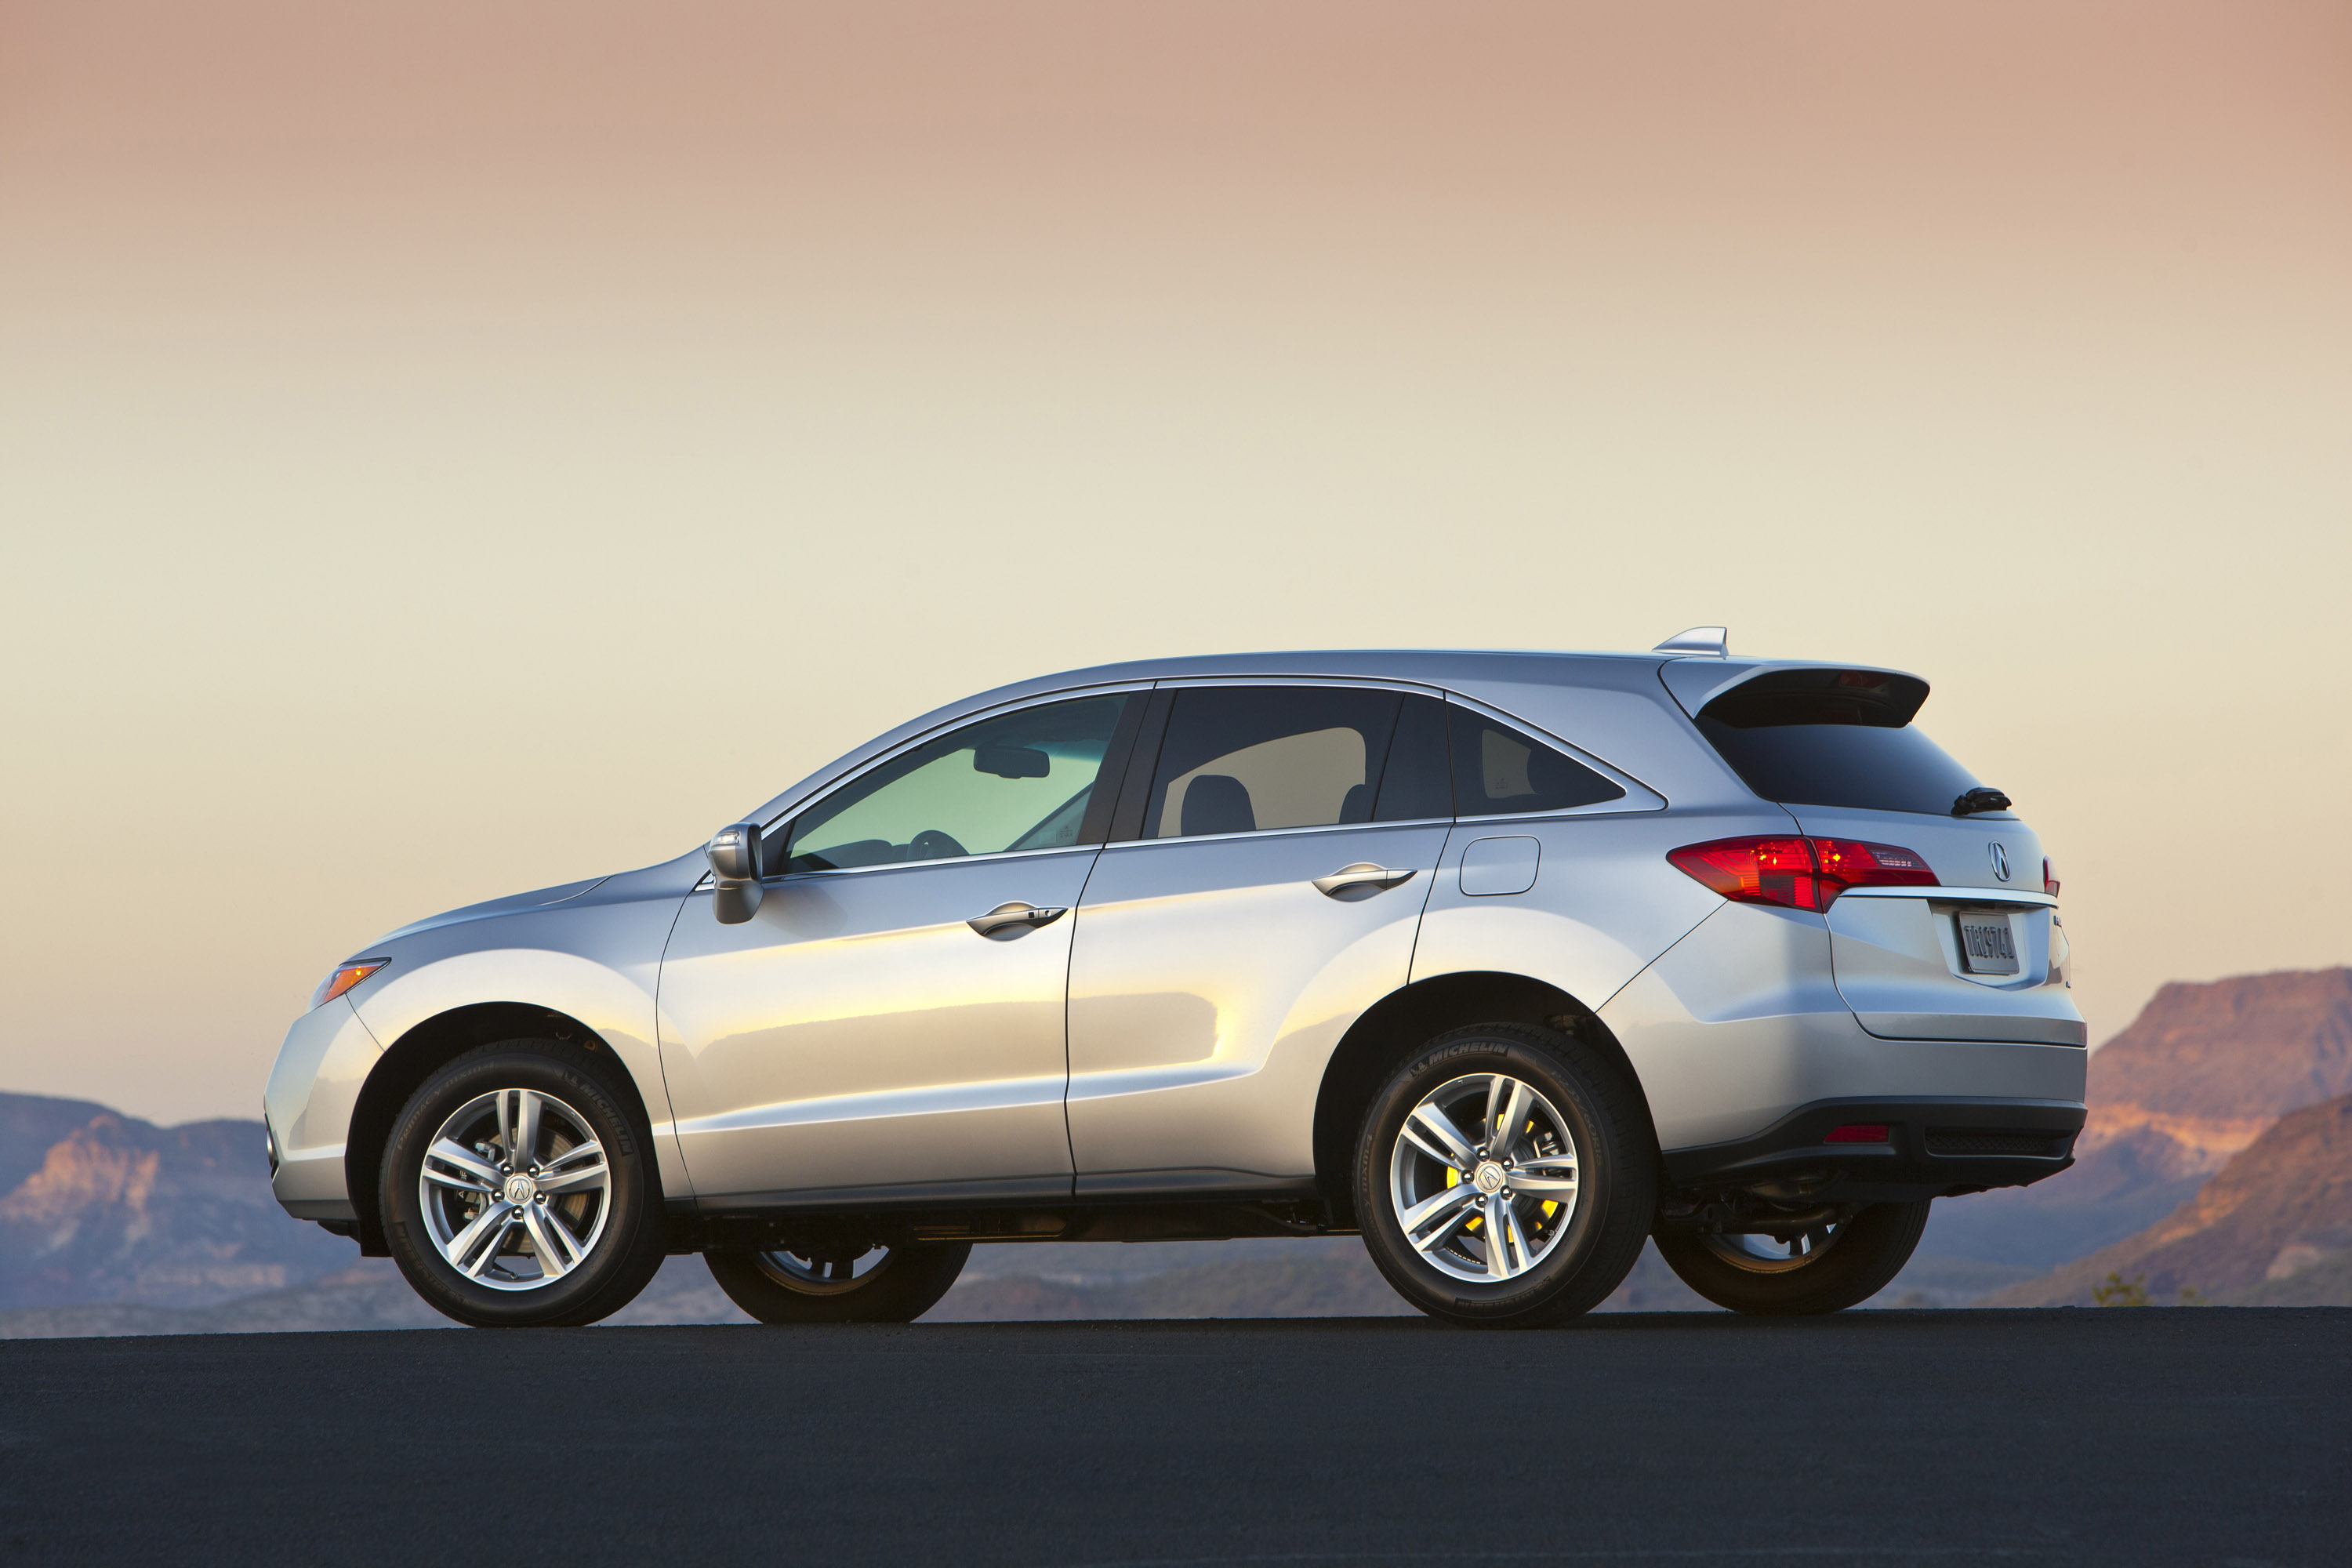 proctor tallahassee acura courtesy sale near june graphite rdx metallic blog for image com the in of htm review luster